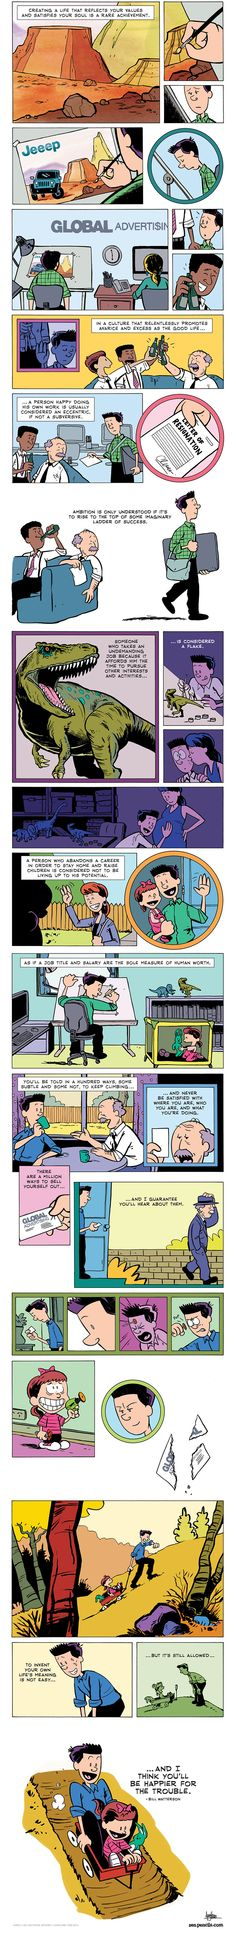 An Important Life Lesson Inspired by Calvin and Hobbes - My Modern Metropolis (You'll notice that the artist is taking the place of Hobbes to the daughter's Calvin.)